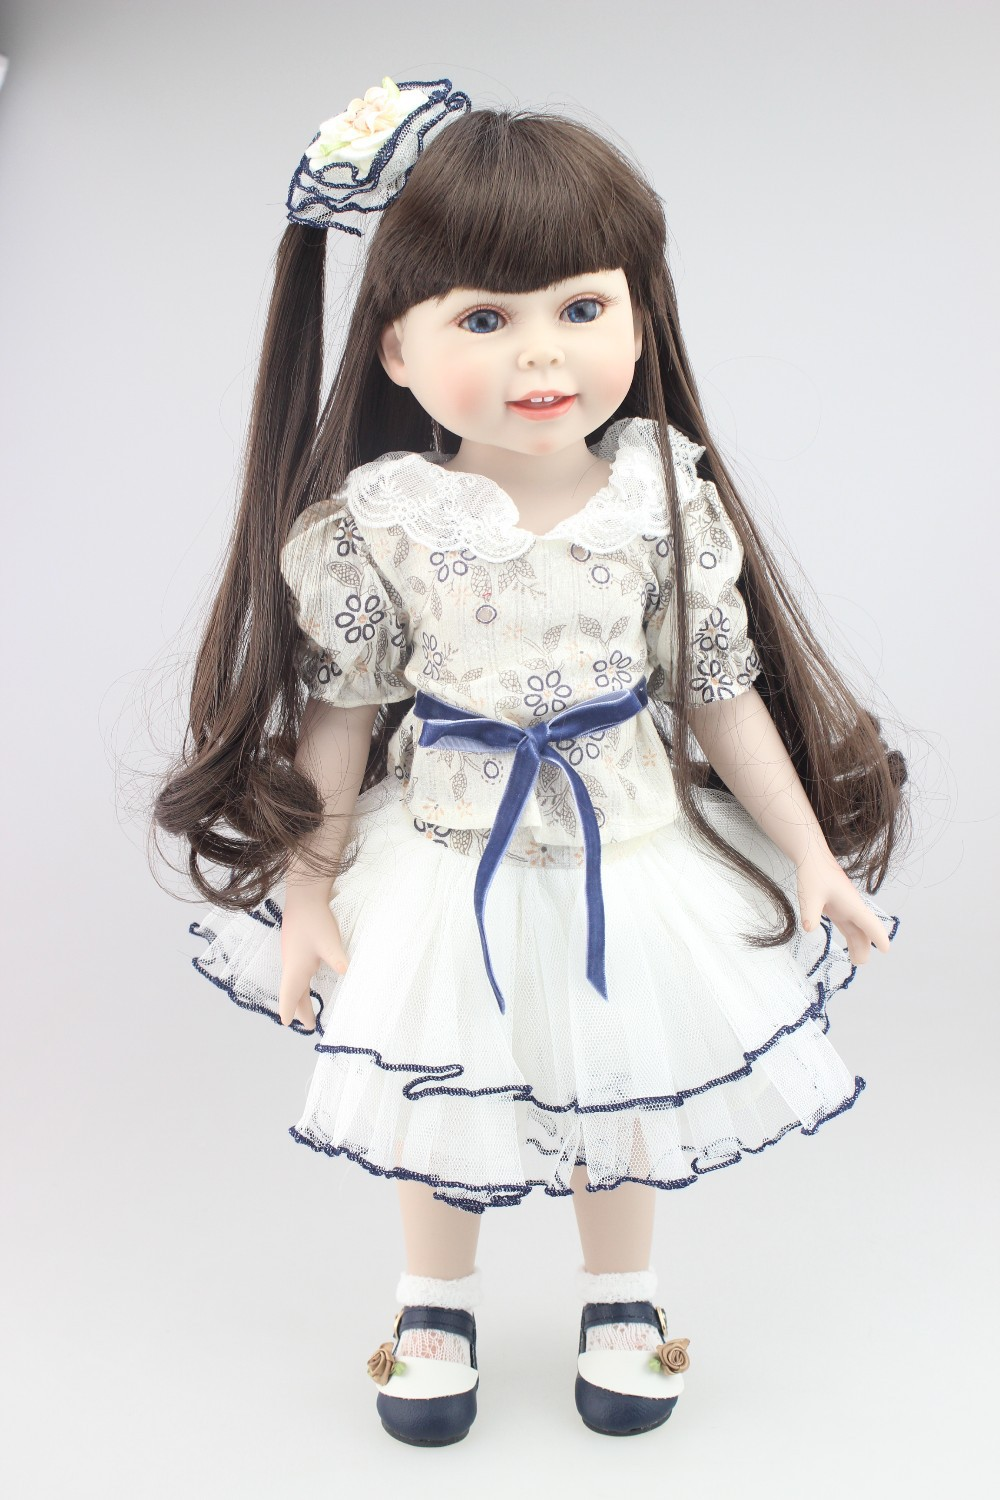 Realistic American girl doll 18inches fashion play doll education toy for girls birthday Gift or kid's doll lifelike american 18 inches girl doll prices toy for children vinyl princess doll toys girl newest design